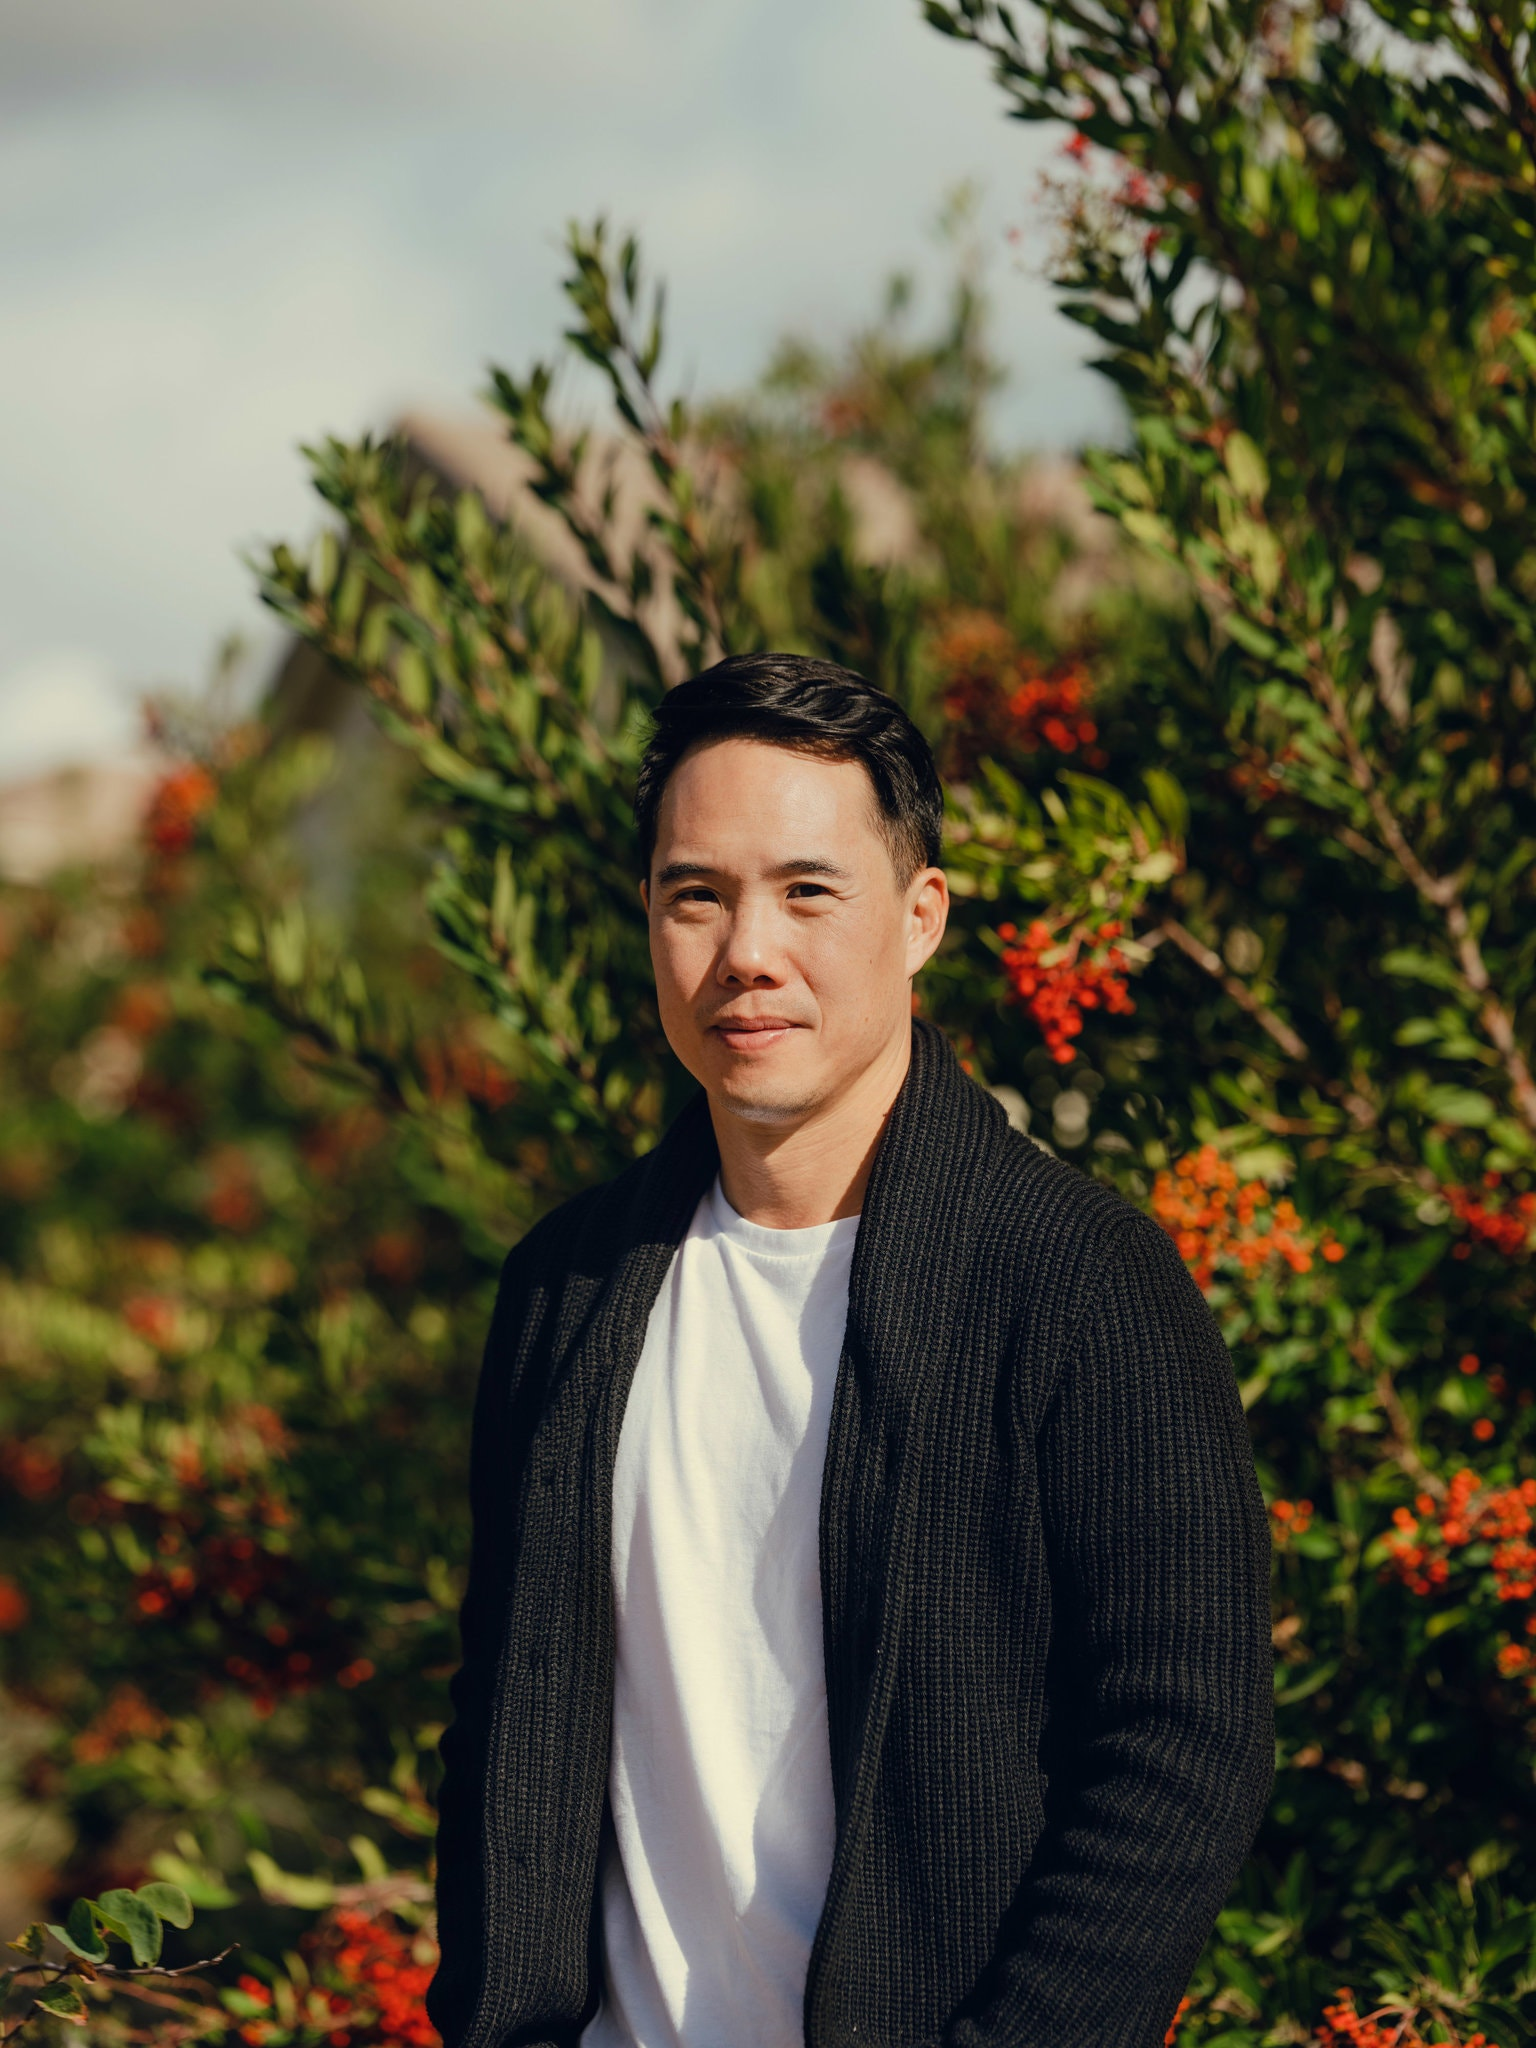 760. With His Fourth Book, Charles Yu Finally Feels Like a Writer/2020/10